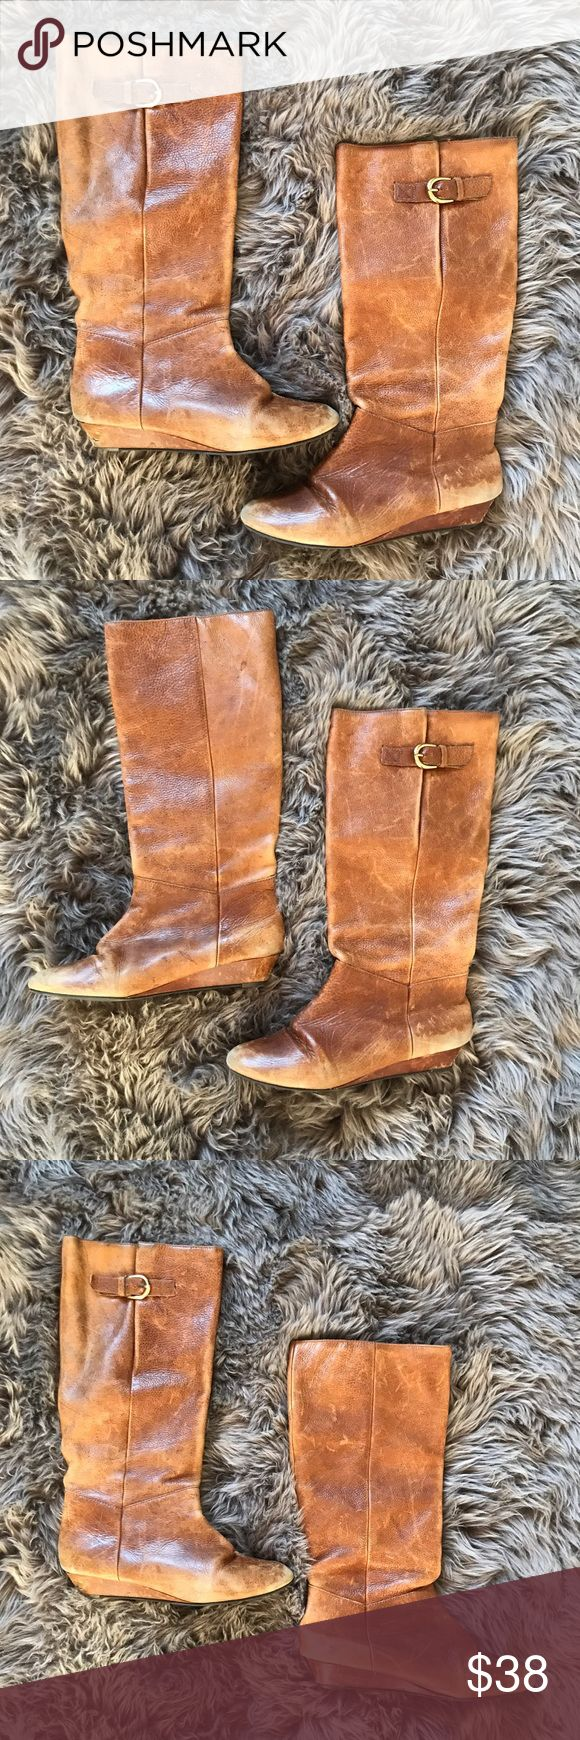 Steve Madden Intyce Leather Boots Steve Madden Intyce Leather Boots are Cognac Brown in color. Leather is very worn, but some like that rustic look. Have slight wedge to heal. Perfect for Fall. Heal is very worn as shown. Size: 7 1/2 Steve Madden Shoes Heeled Boots